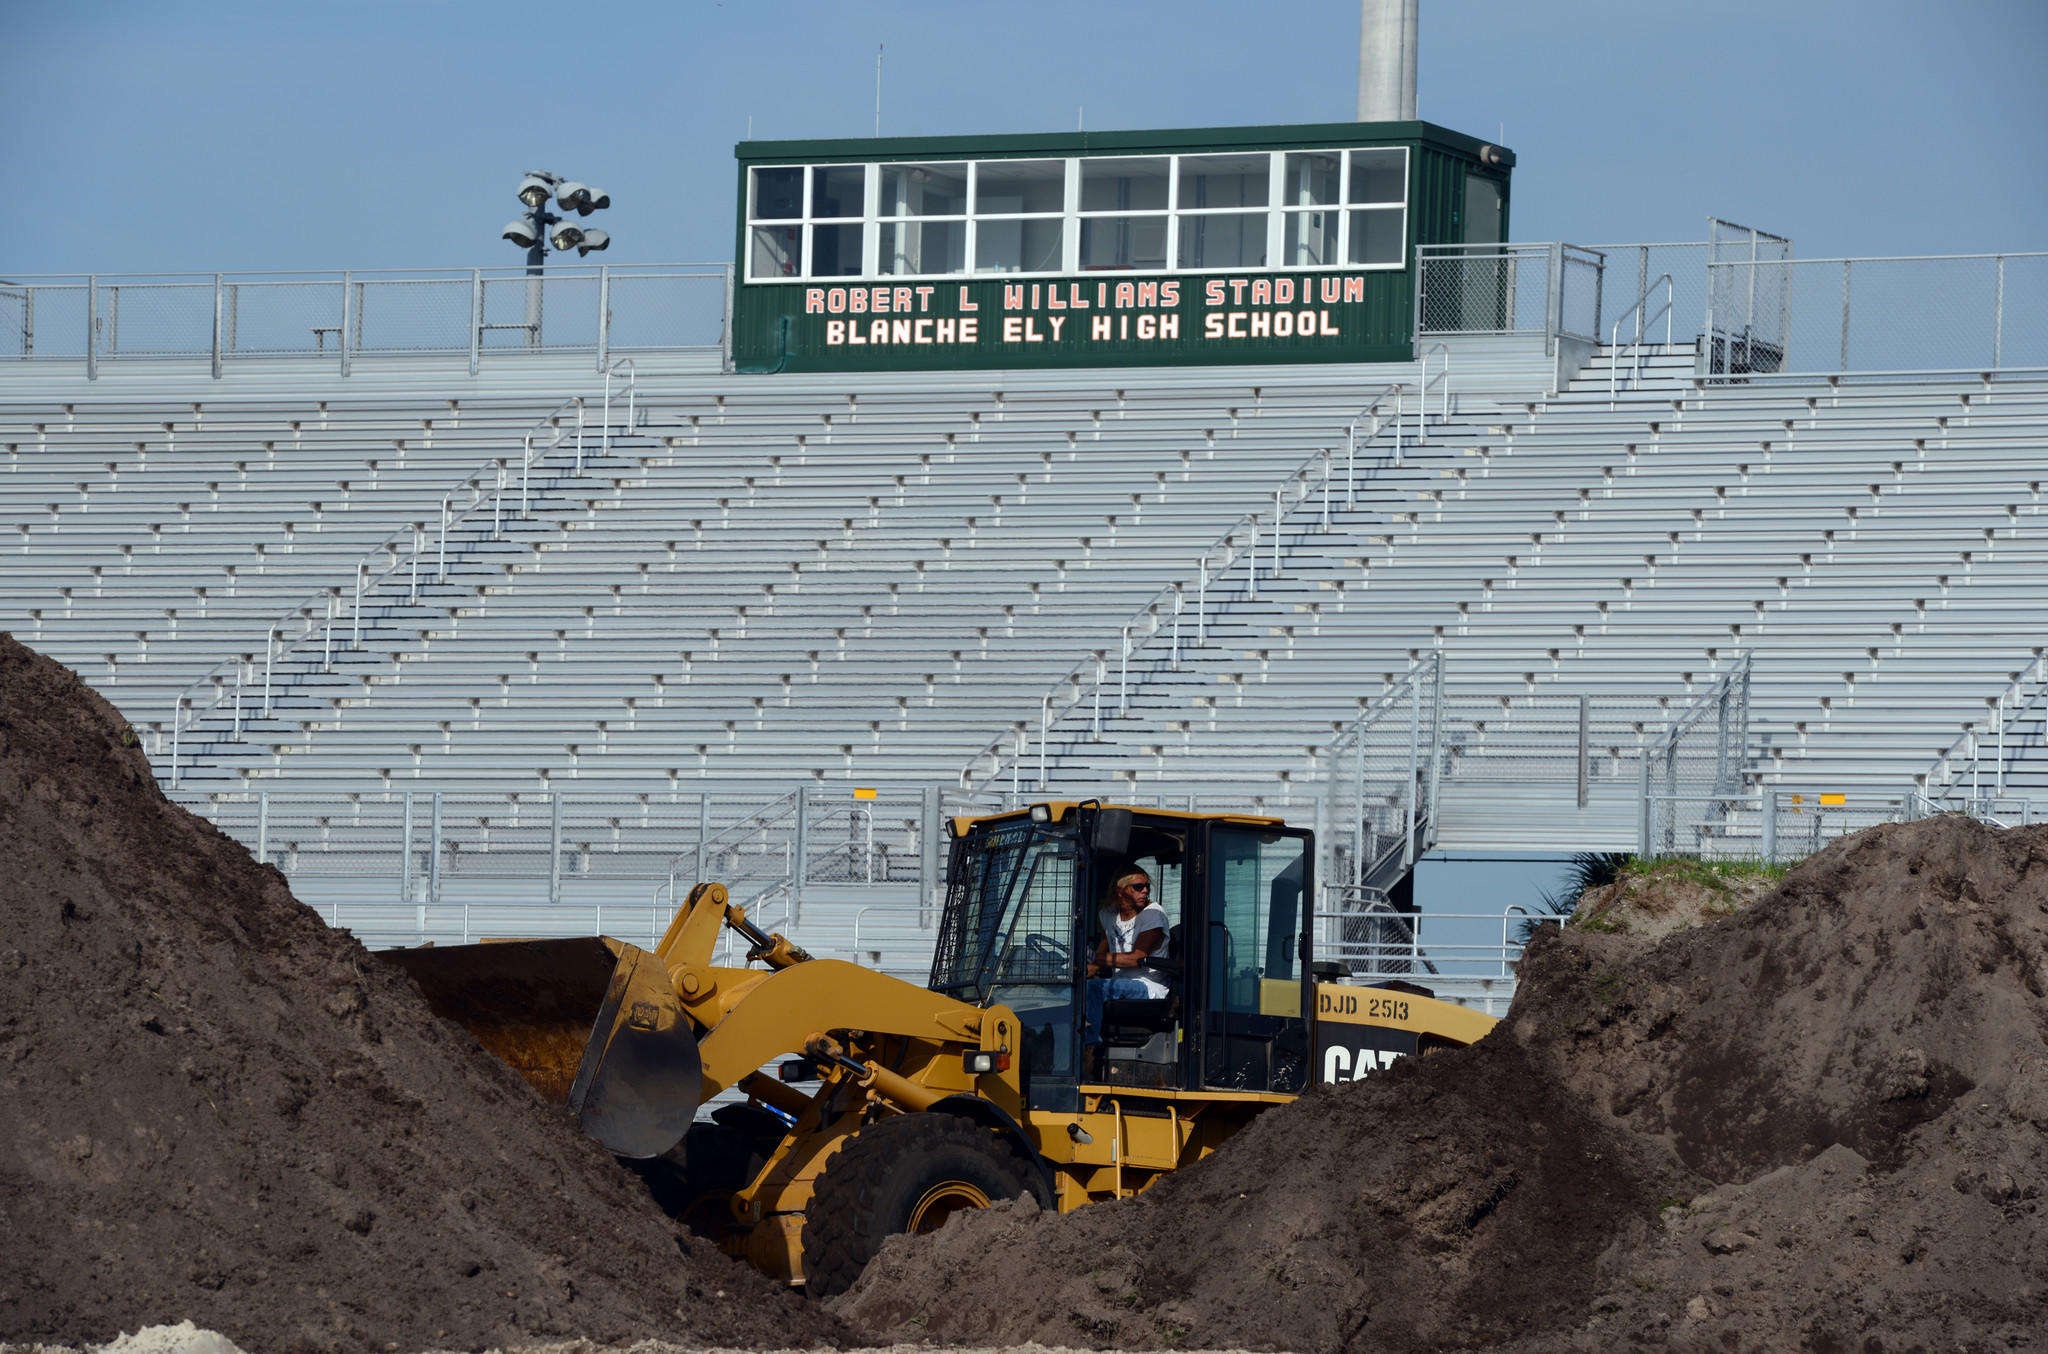 Work continues at Robert L. Williams Stadium at Blanche Ely High School.